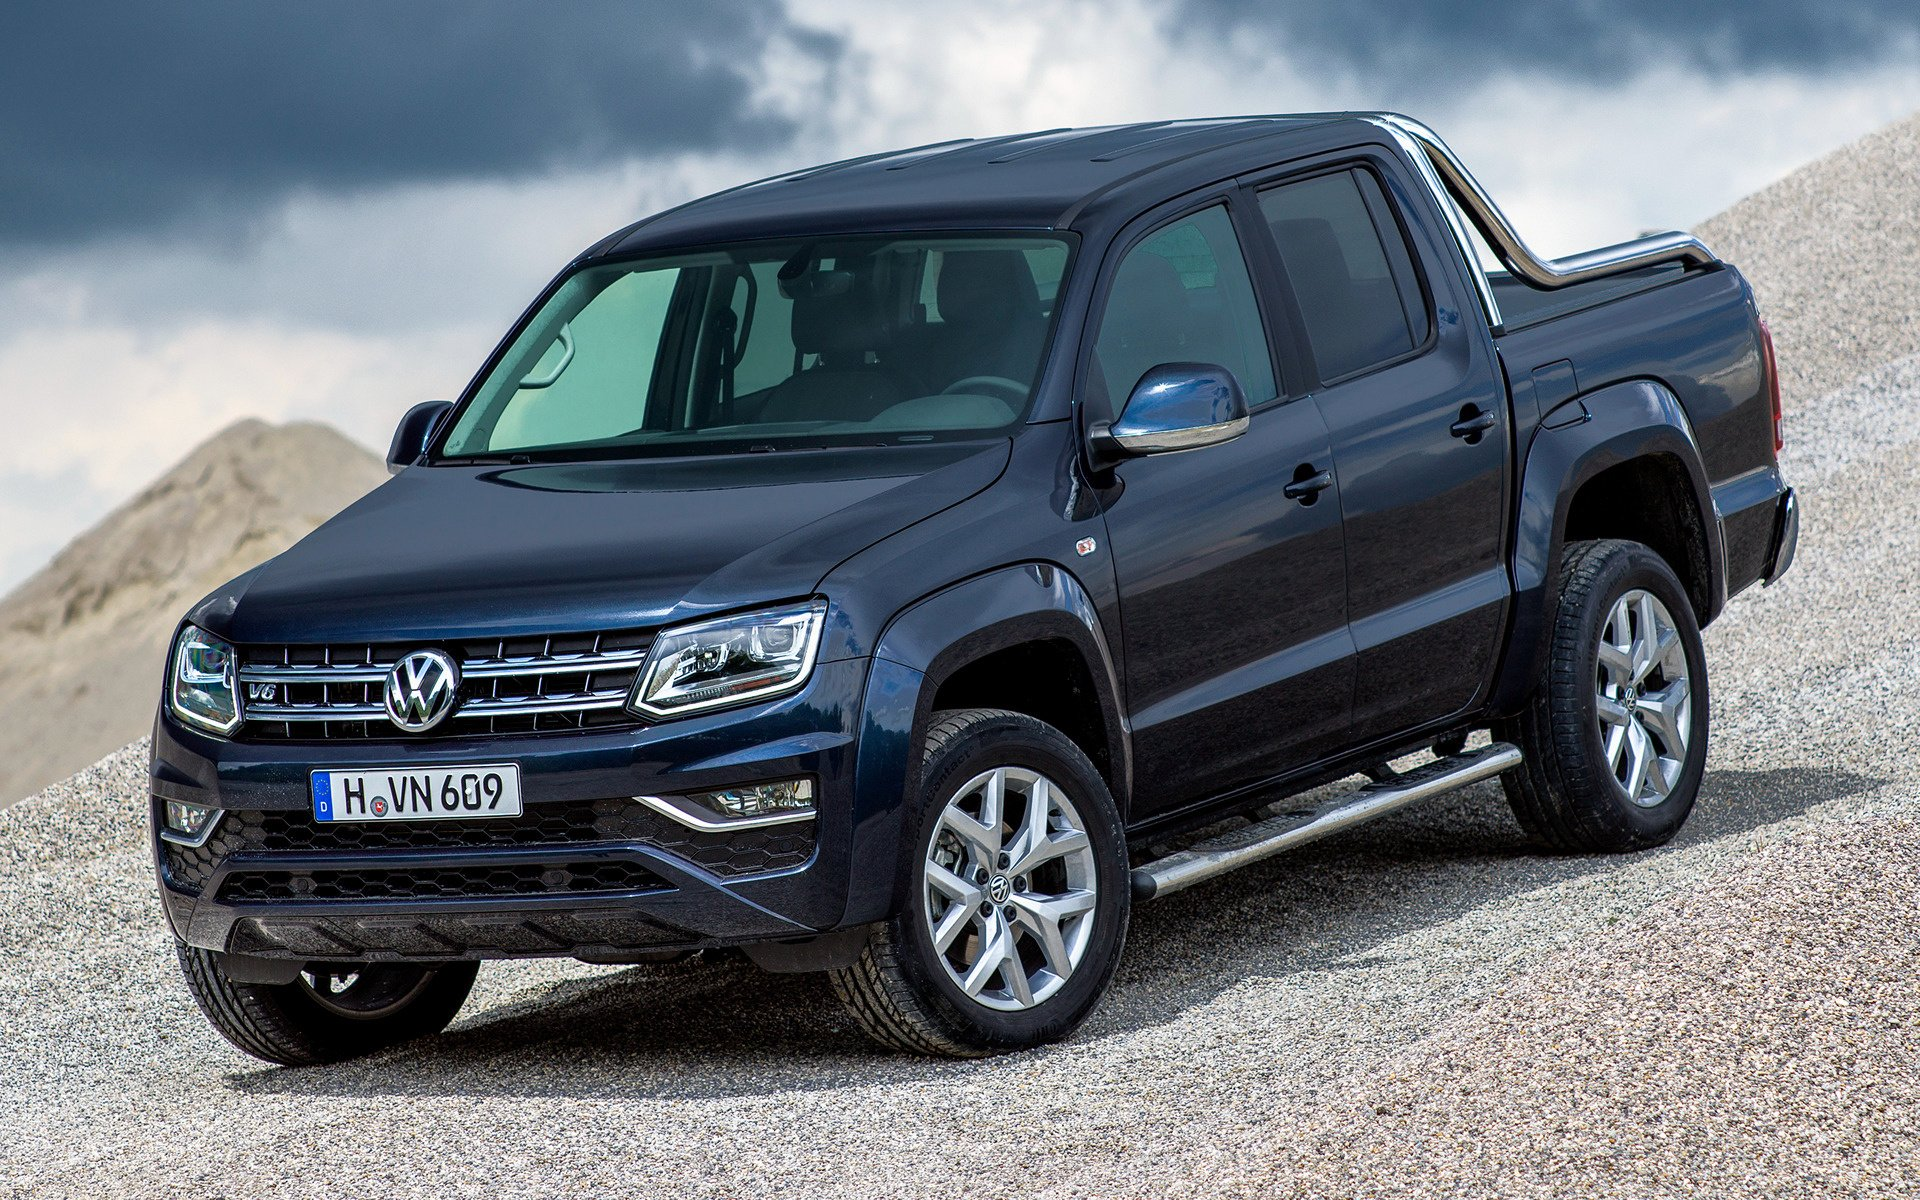 2016 Volkswagen Amarok Double Cab   Wallpapers and HD Images Car 1920x1200